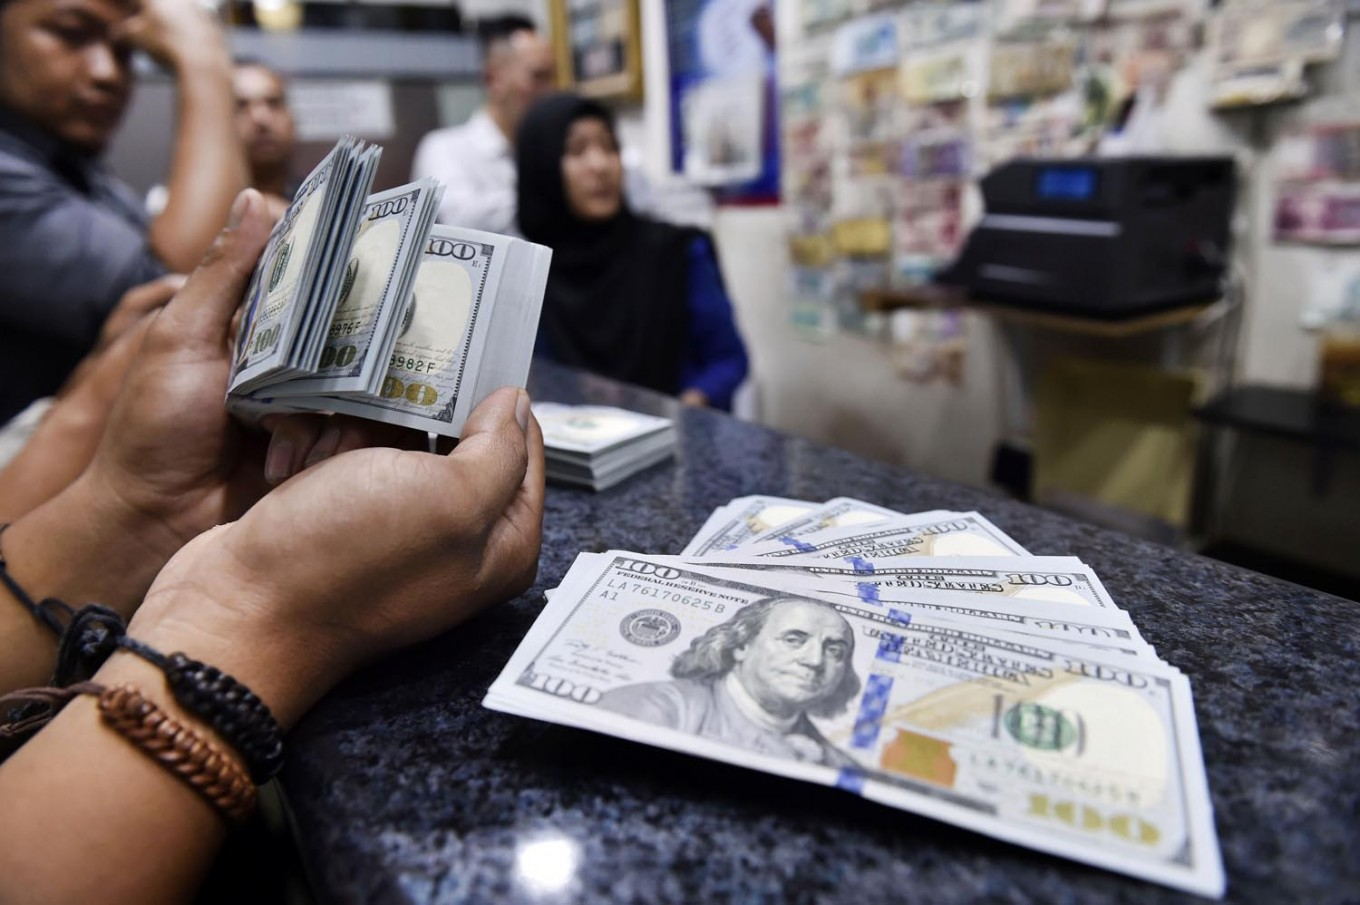 Rupiah strengthens to Rp 14,380 per US dollar ahead of FOMC meeting